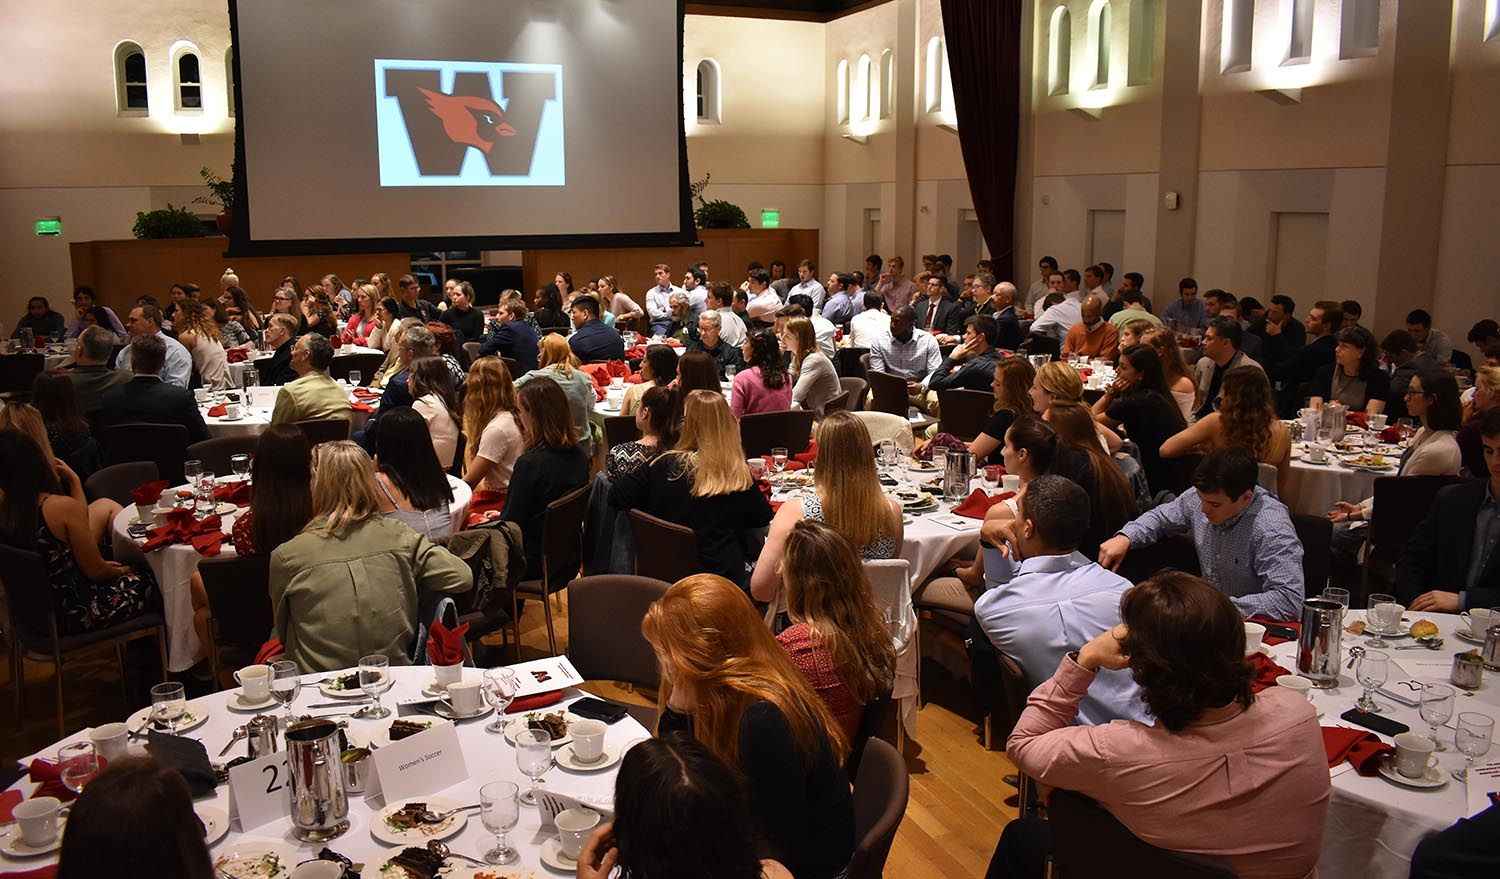 On May 2, Wesleyan Athletics celebrated its student-athletes and coaches at the seventh annual Scholar-Athlete Dinner in Beckham Hall. (Photos by Tom Dzimian)